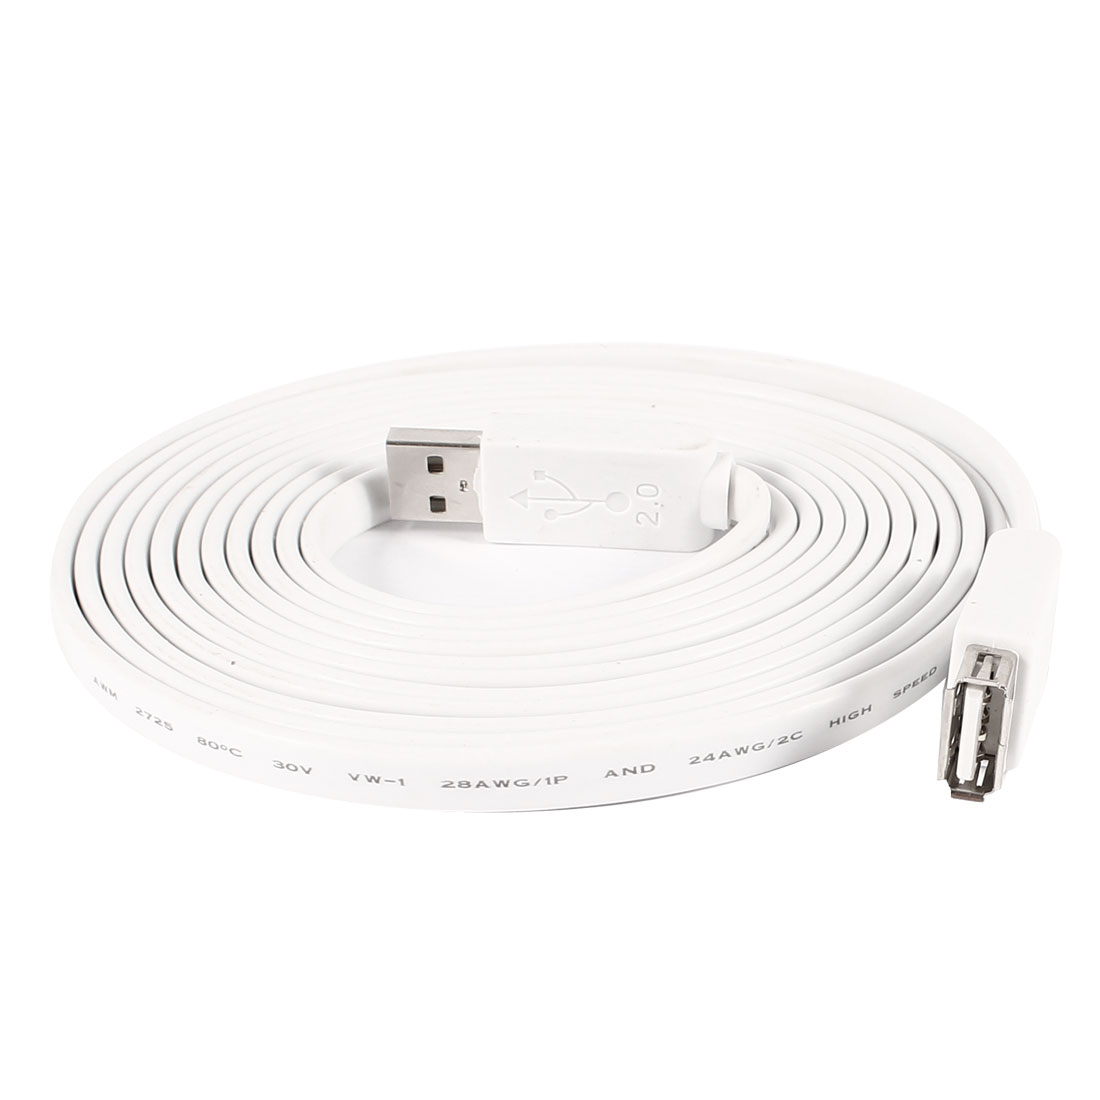 USB 2.0 Type A Male to Female M/F Connector Flat Cable 3 Meters White